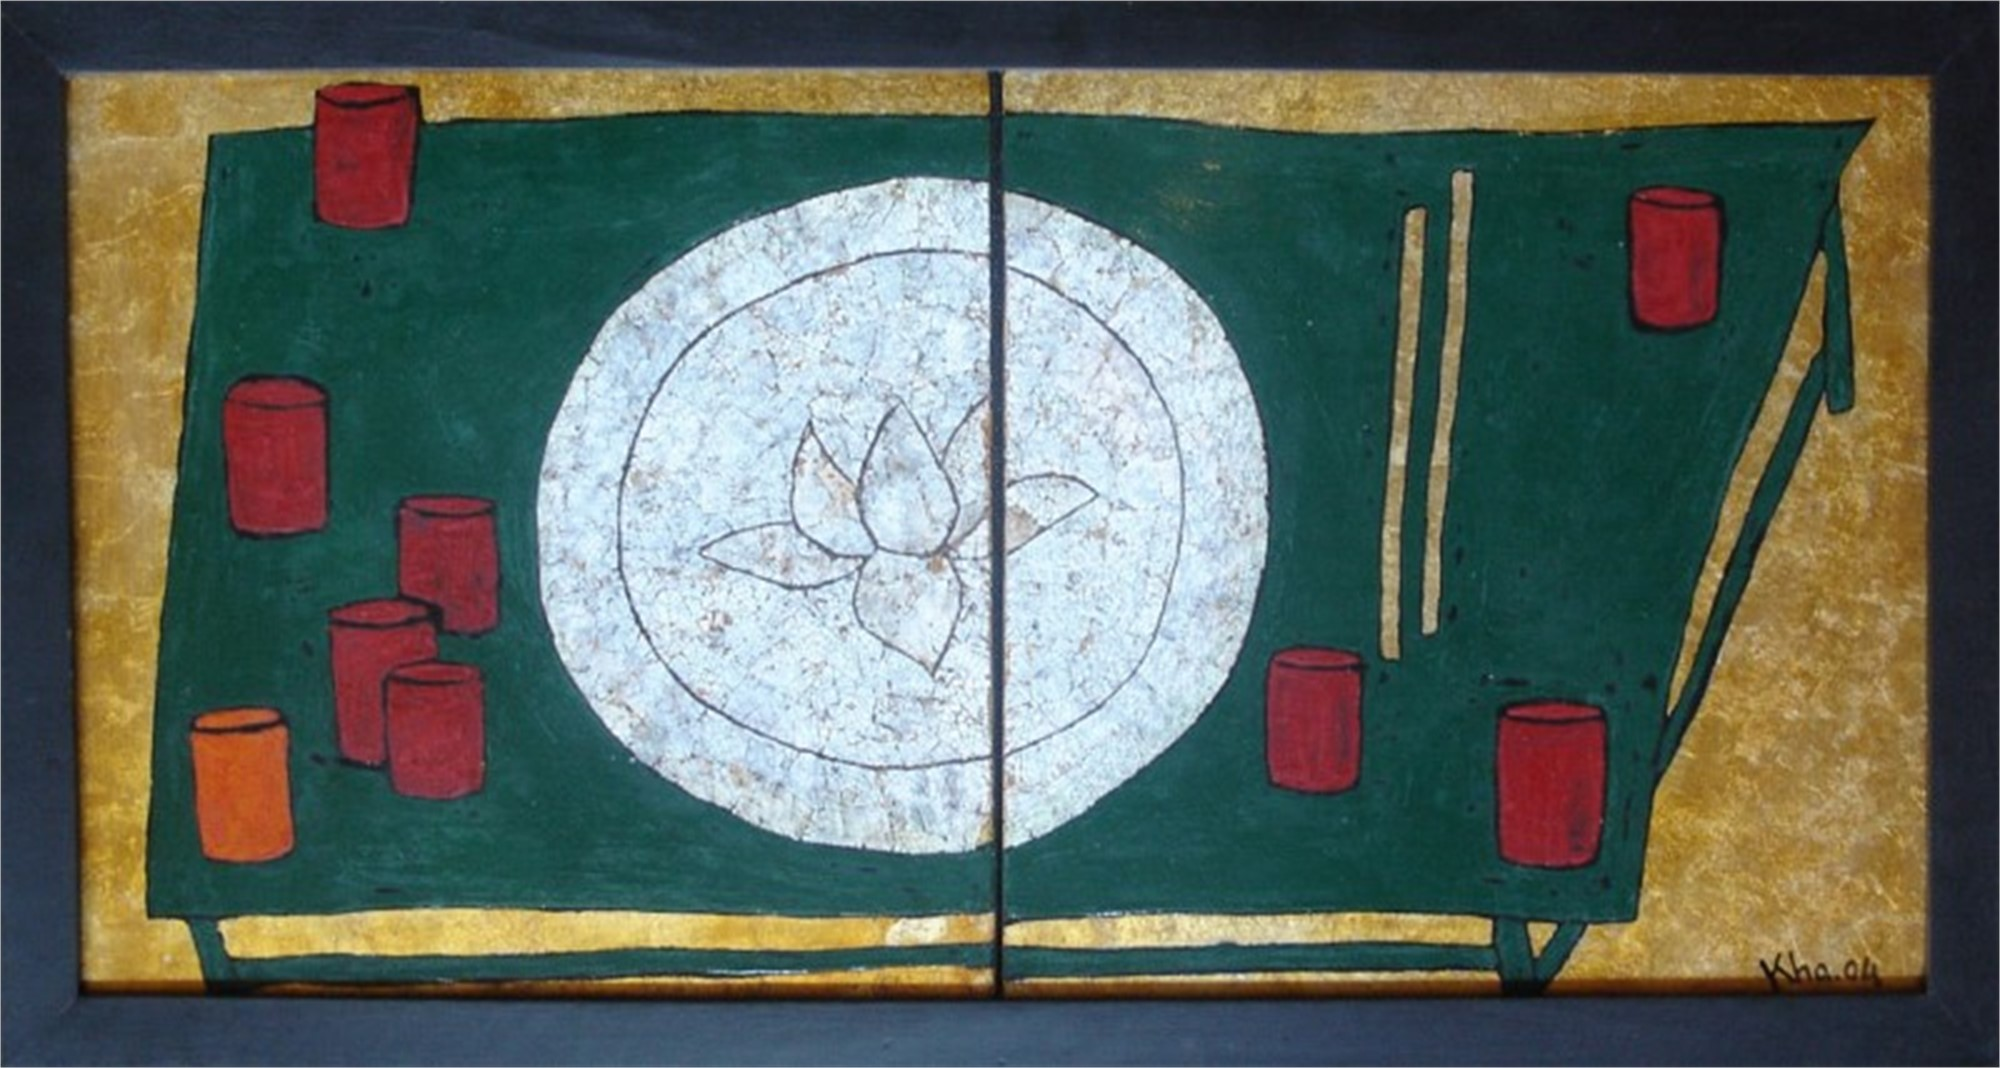 A Common Plate II by Bui Cong Khanh